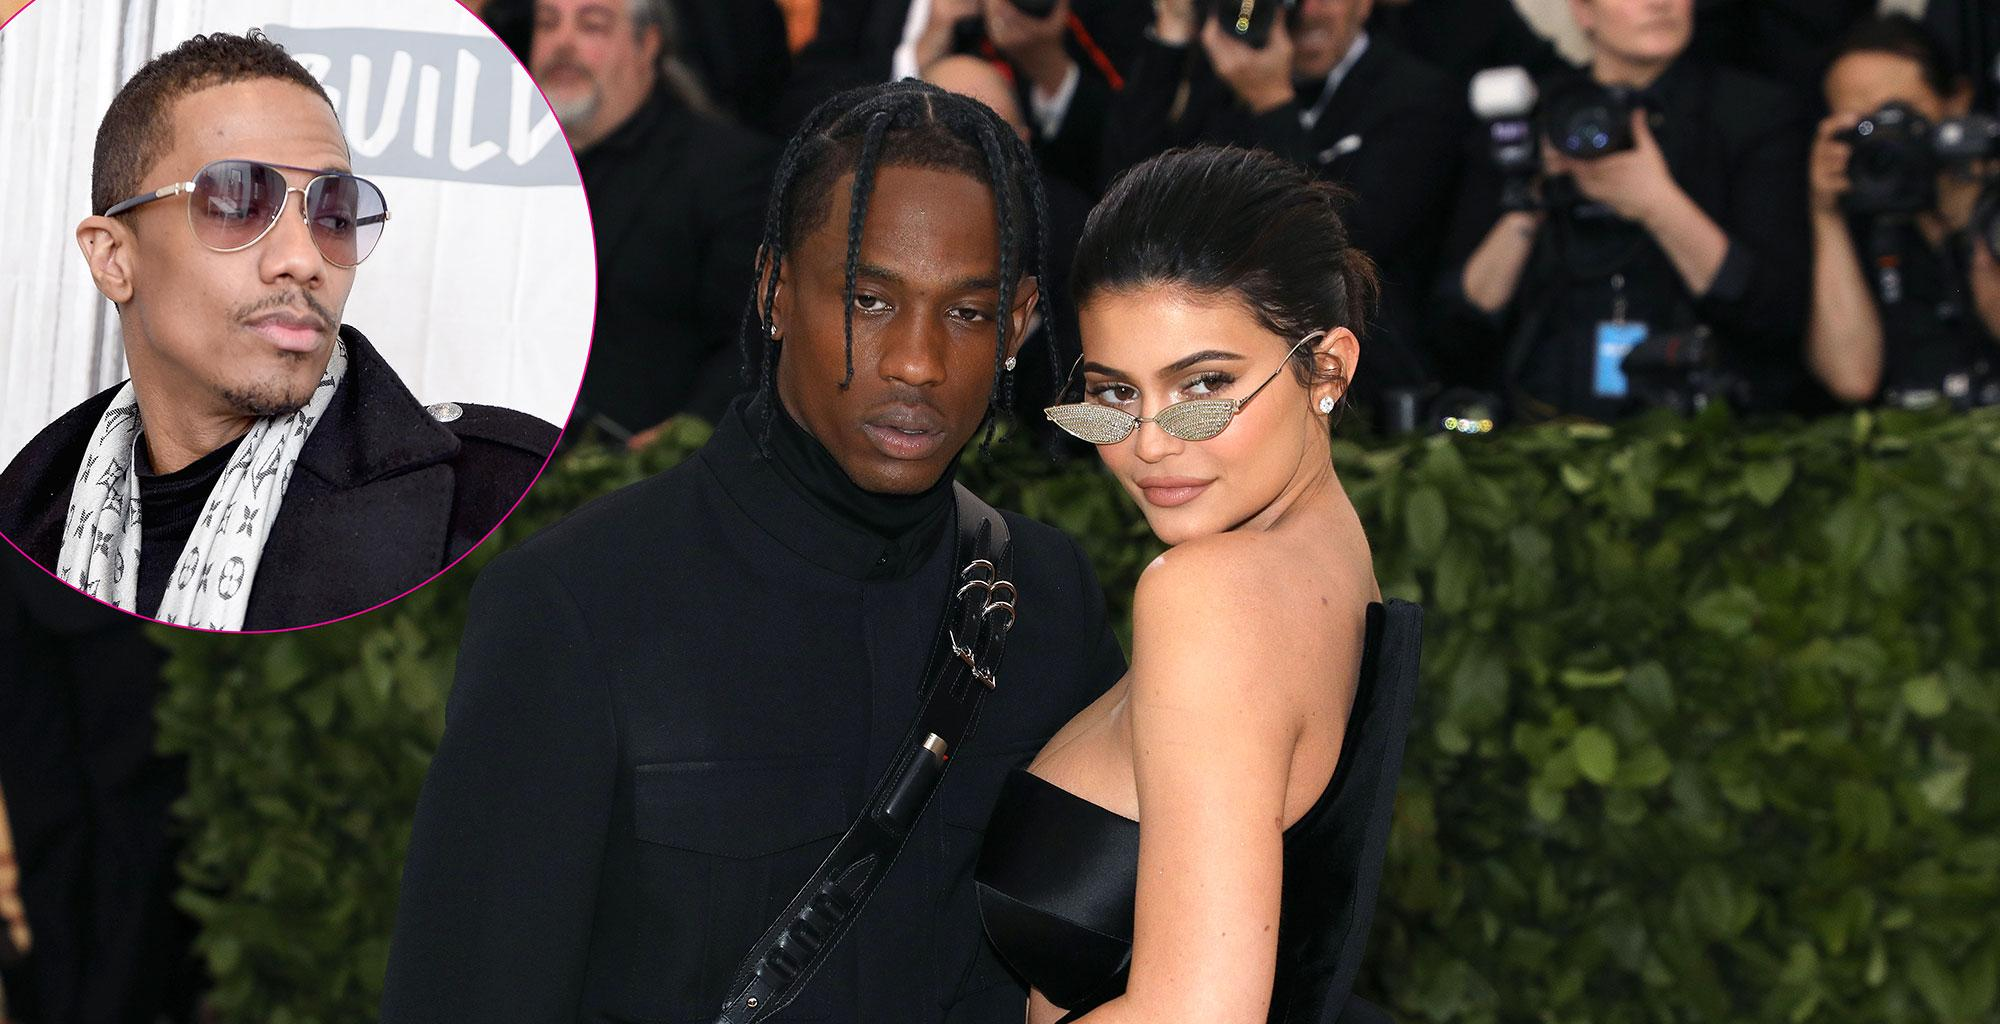 Travis Scott Is Reportedly Angry After Nick Cannon Shades His Romance With Kylie Jenner